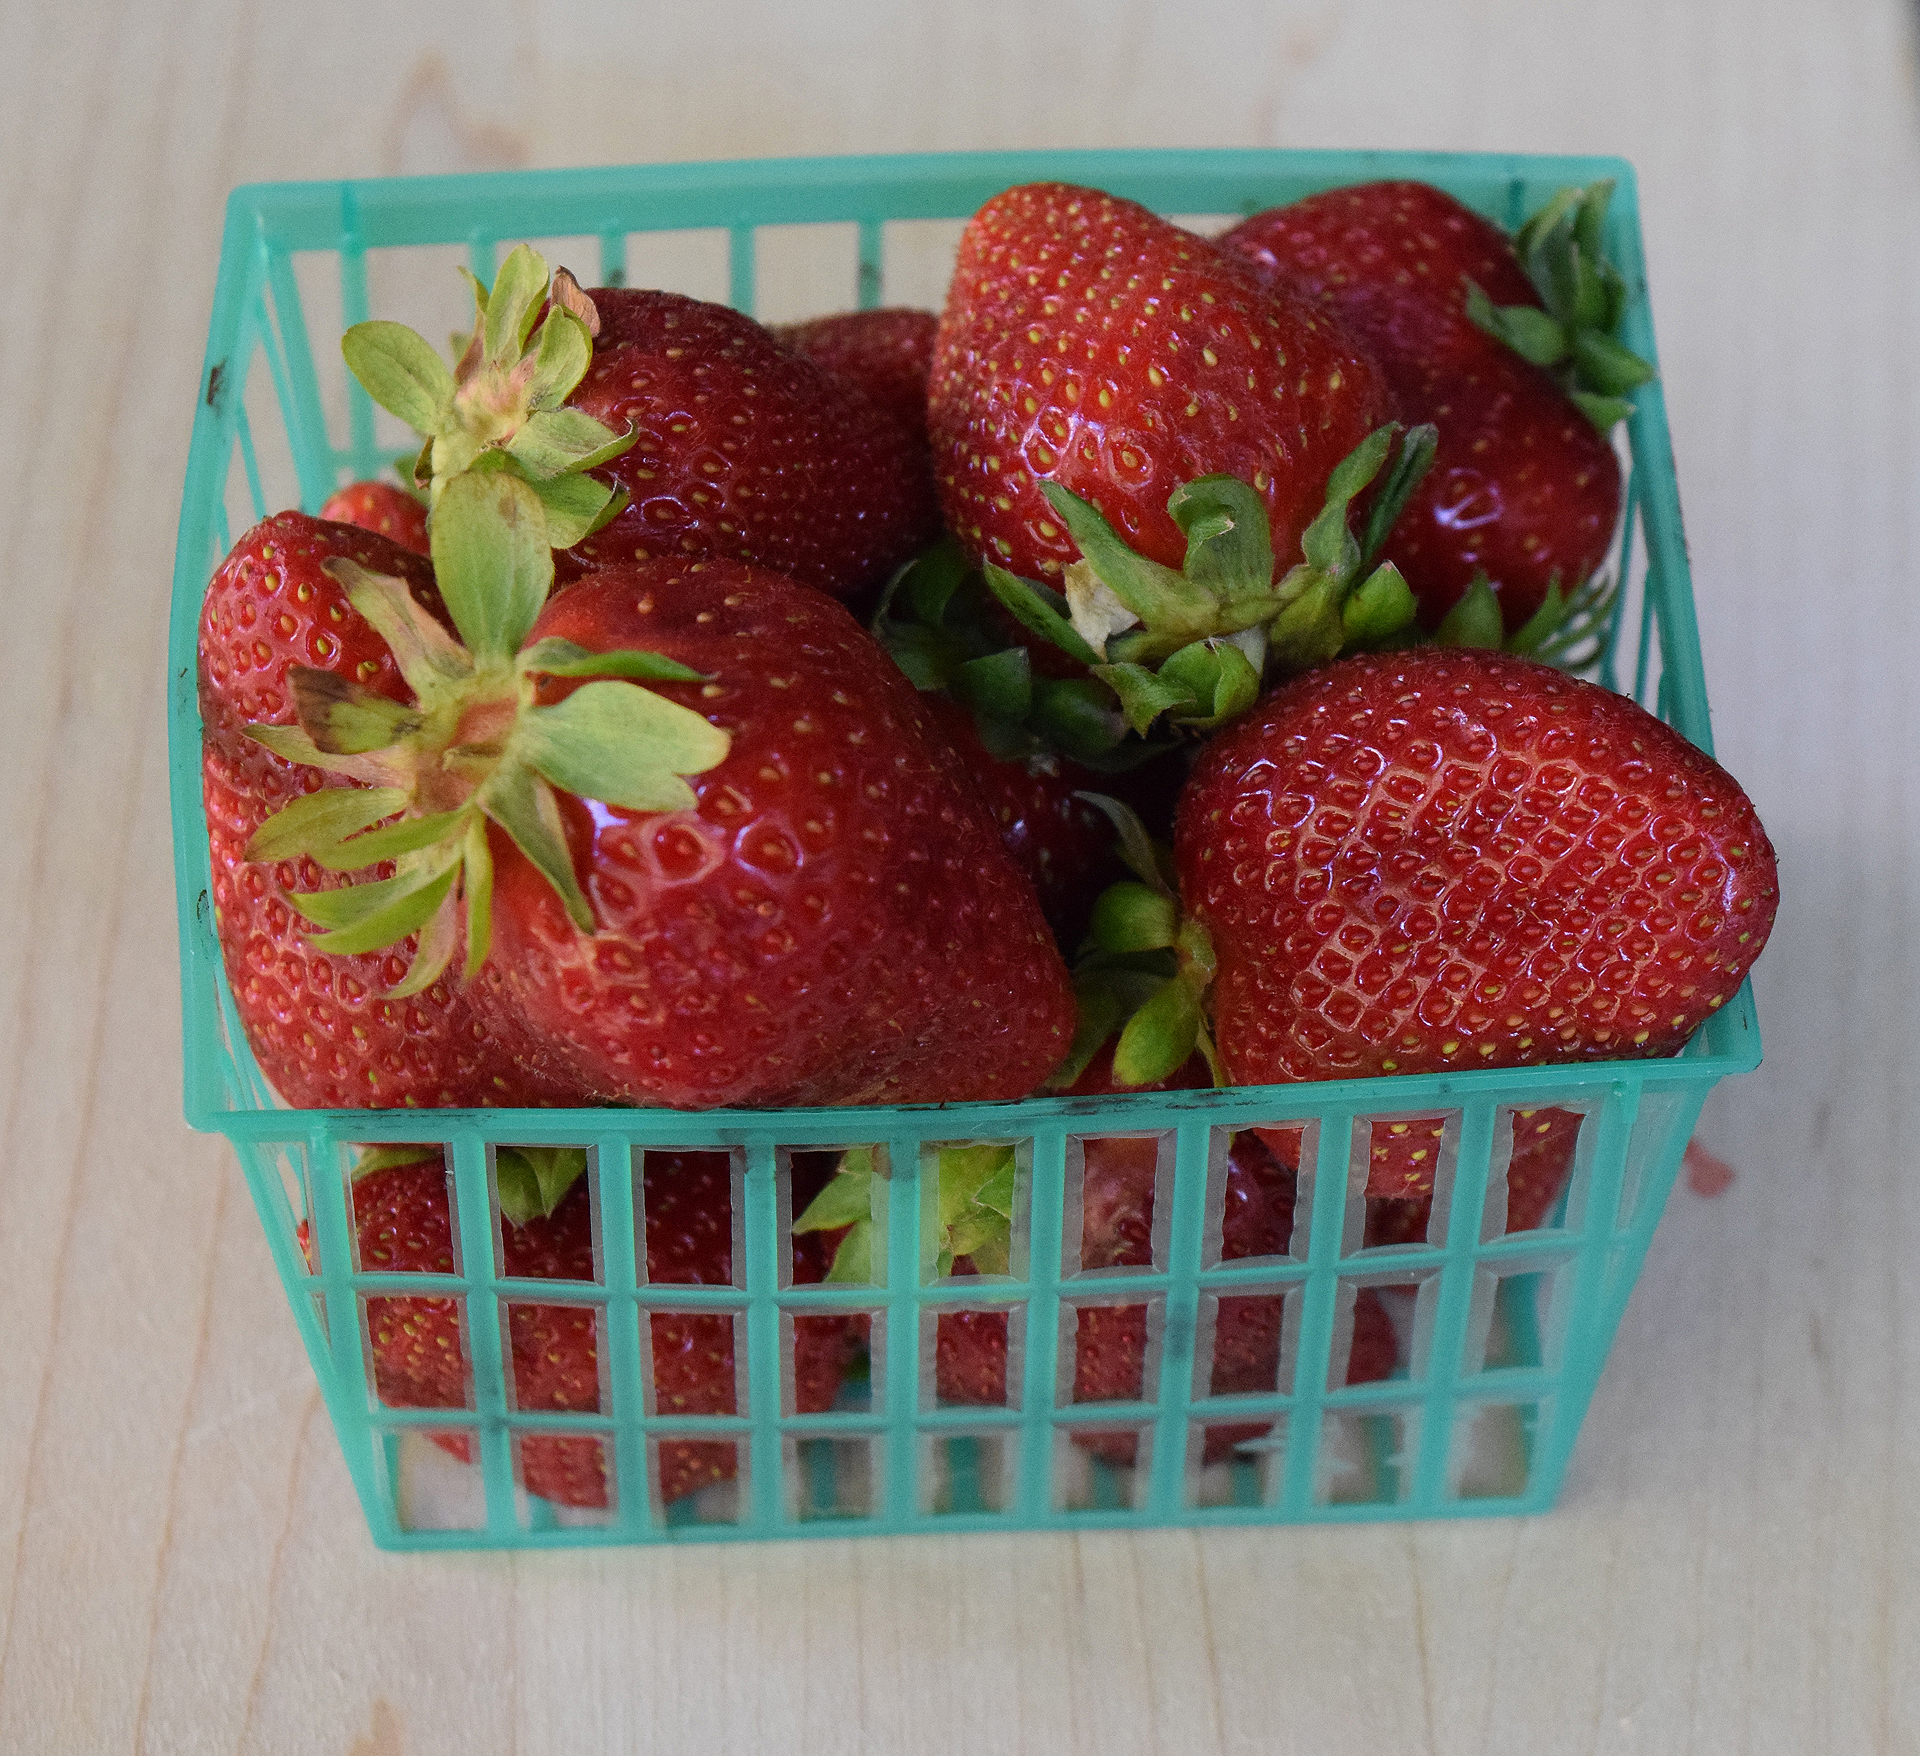 Deep red, perfectly ripe and intensely flavored, the Chandler variety available from Swanton Berry Farm is lower-yield than the Albion variety that organic growers favor.